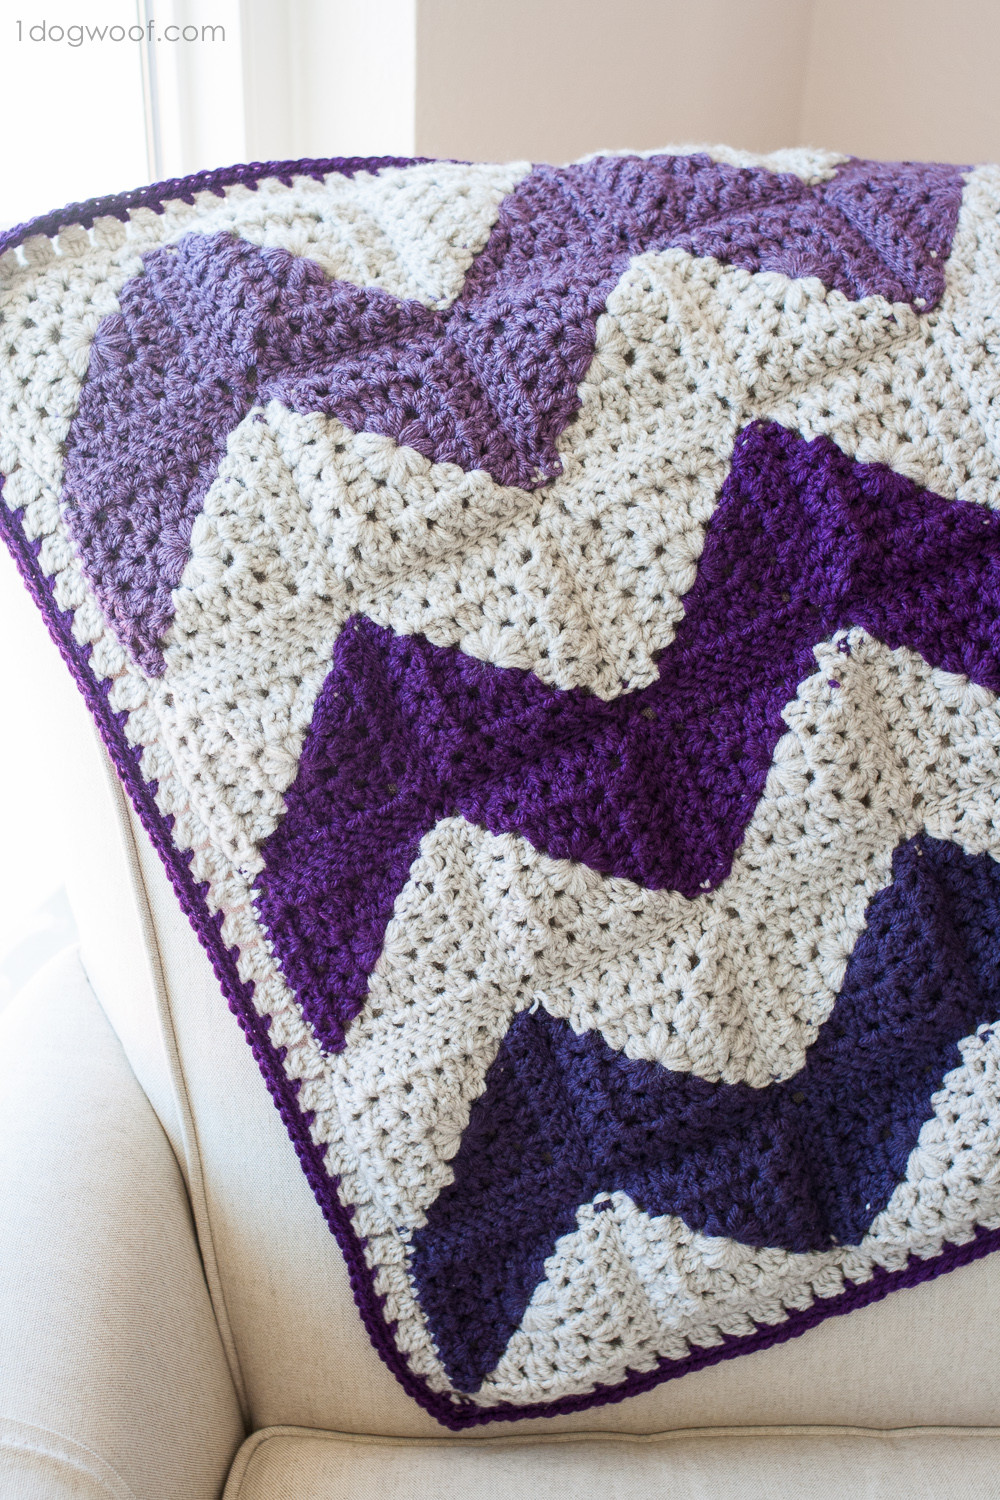 Free Granny Square Afghan Patterns Awesome Granny Squares Chevron Afghan Crochet Pattern E Dog Woof Of Amazing 46 Pictures Free Granny Square Afghan Patterns